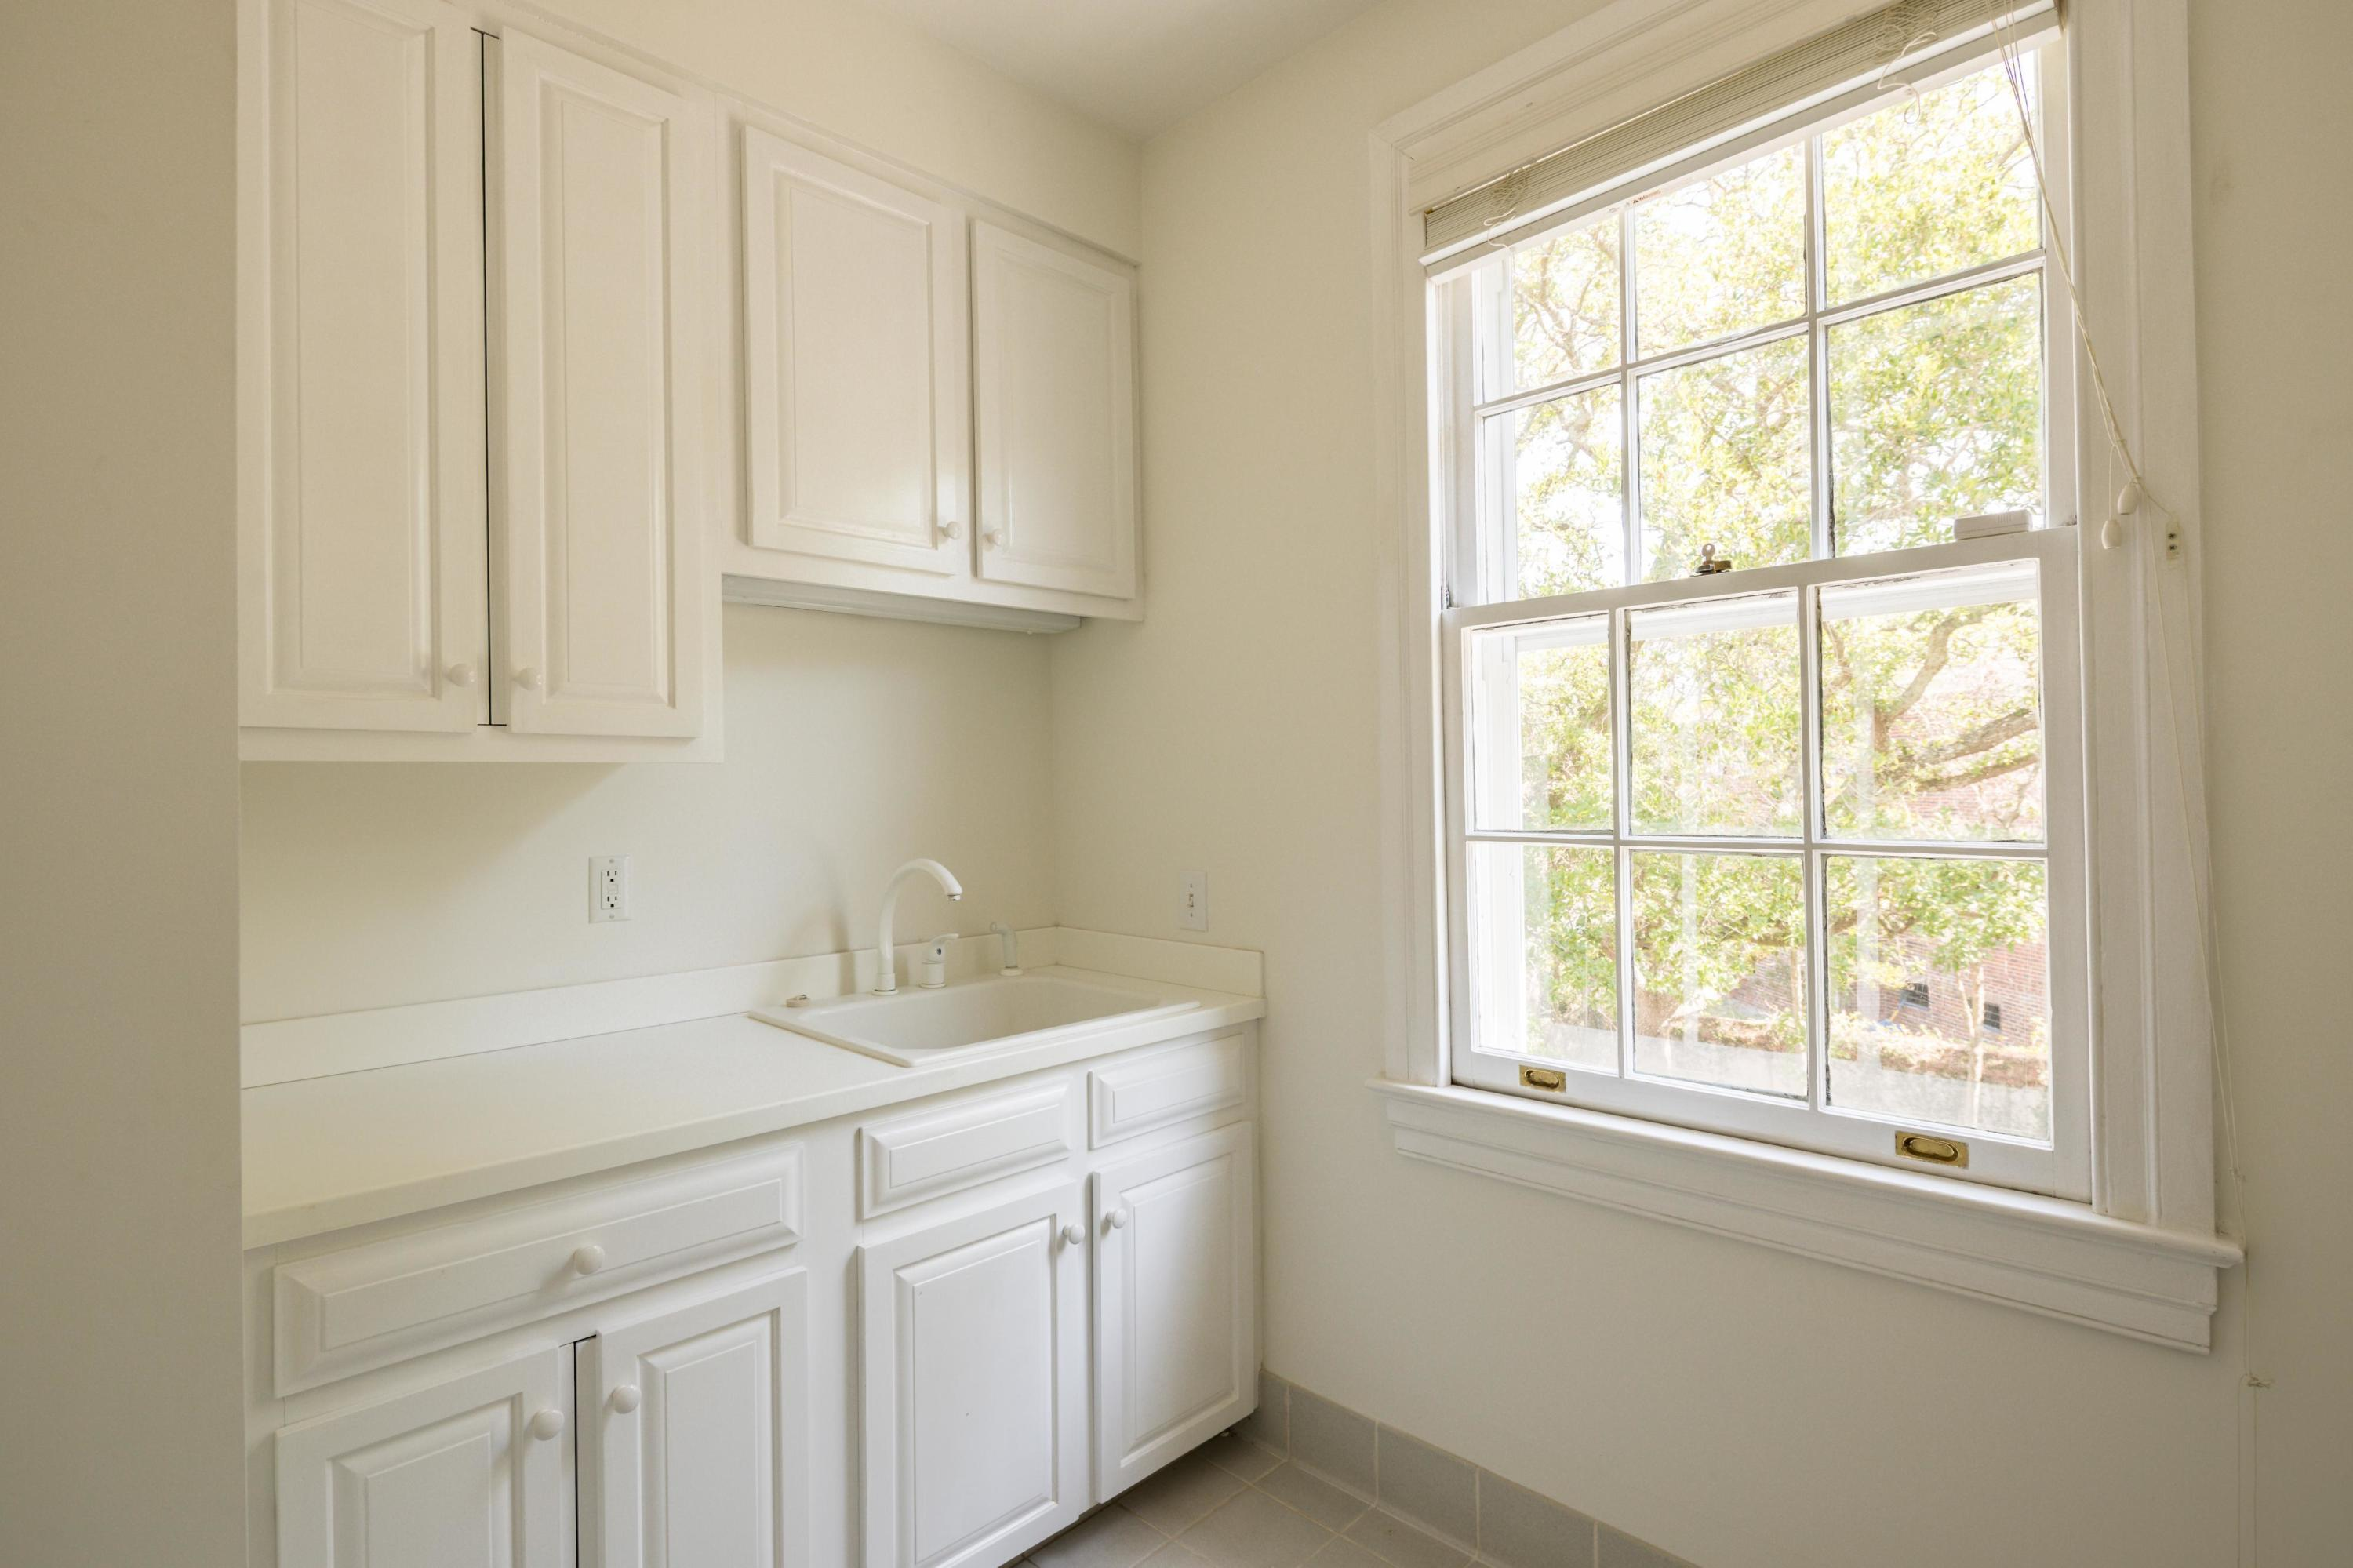 South of Broad Homes For Sale - 104 Murray, Charleston, SC - 12